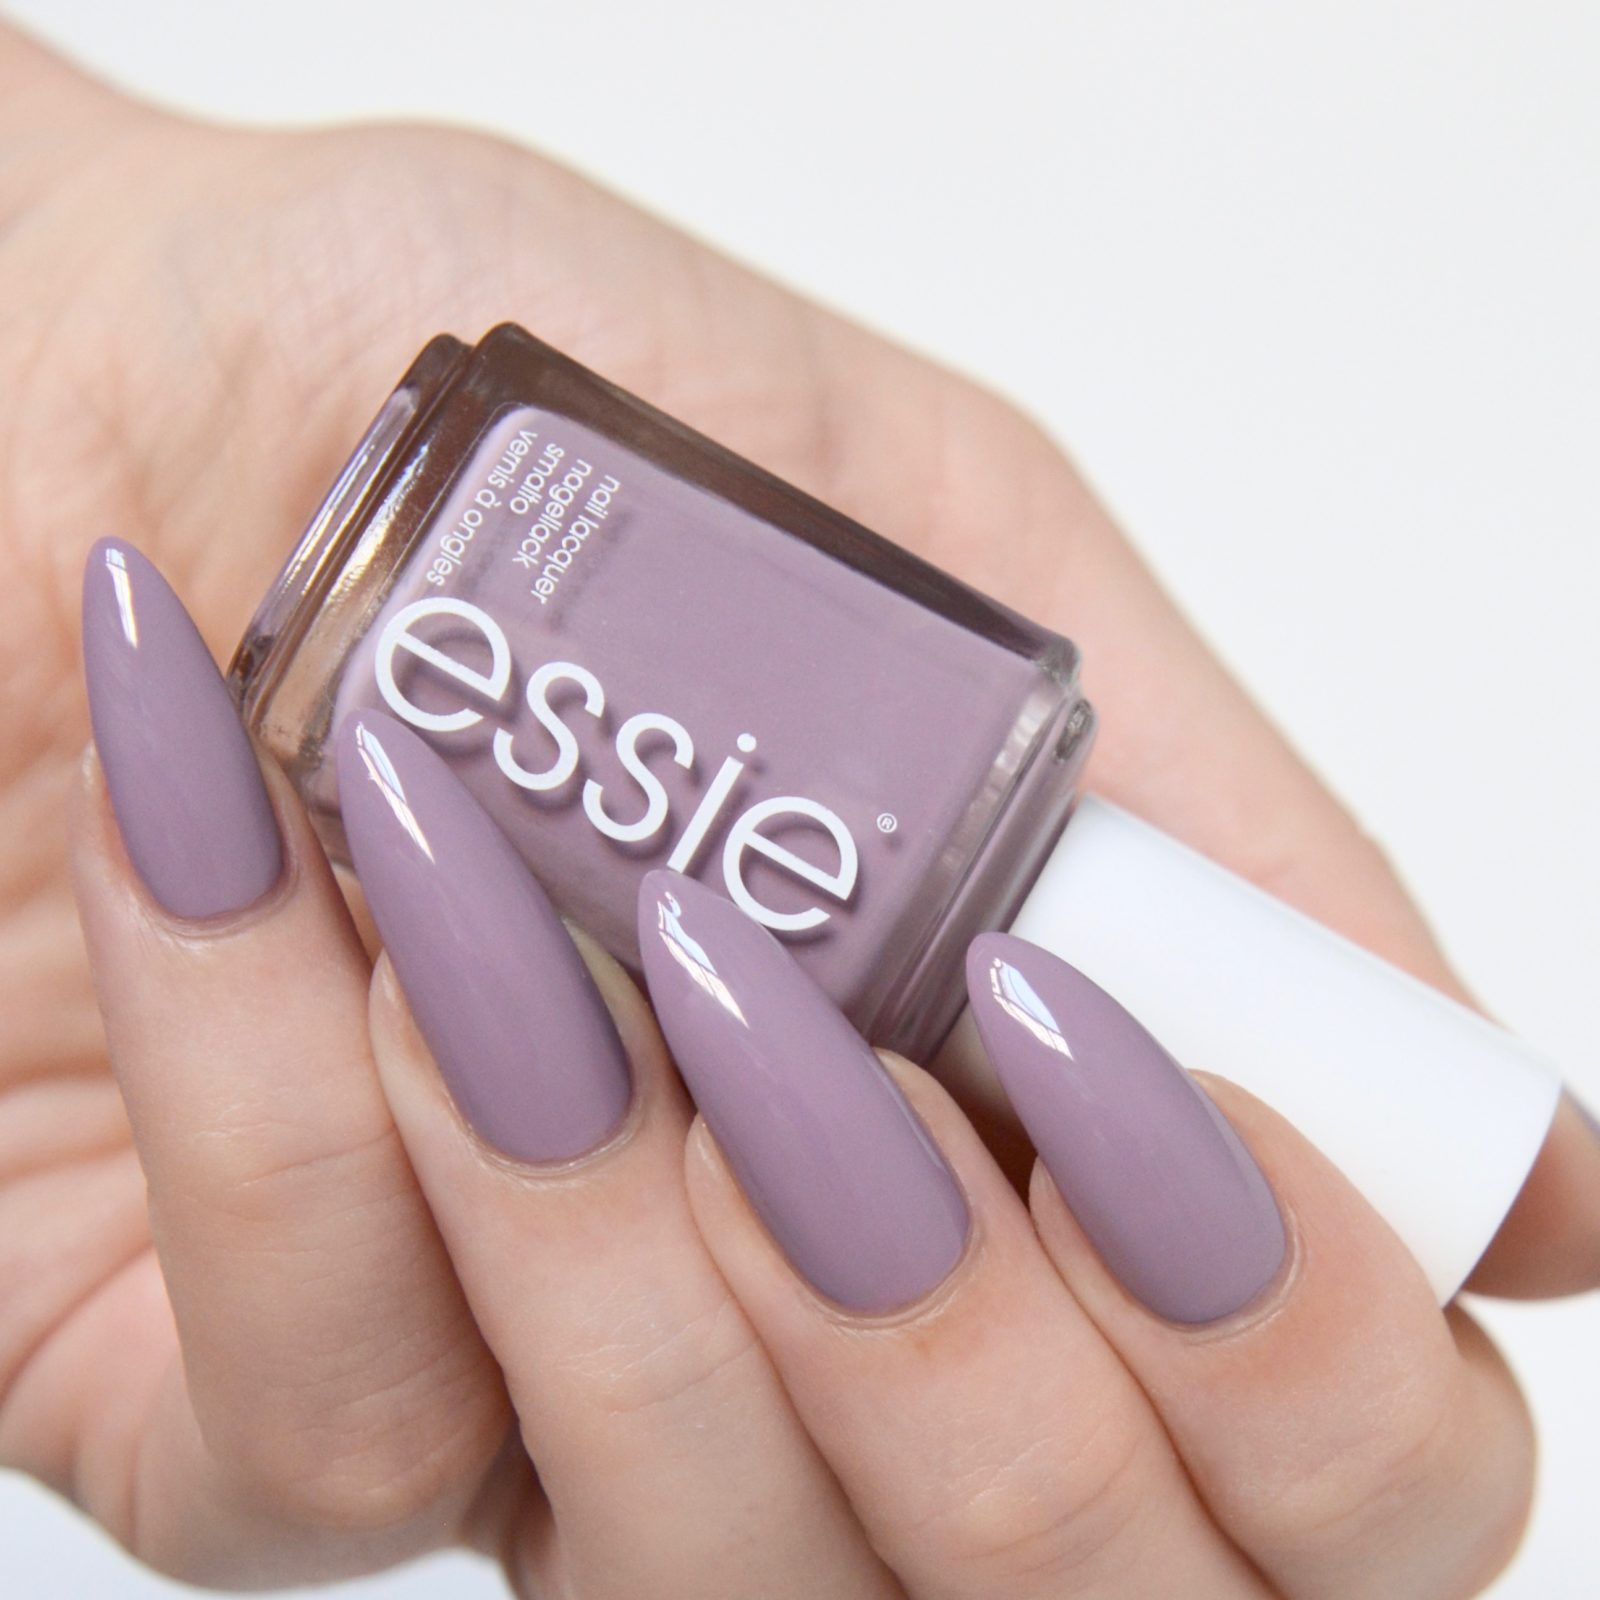 Essie Resort 2017 Collection Review